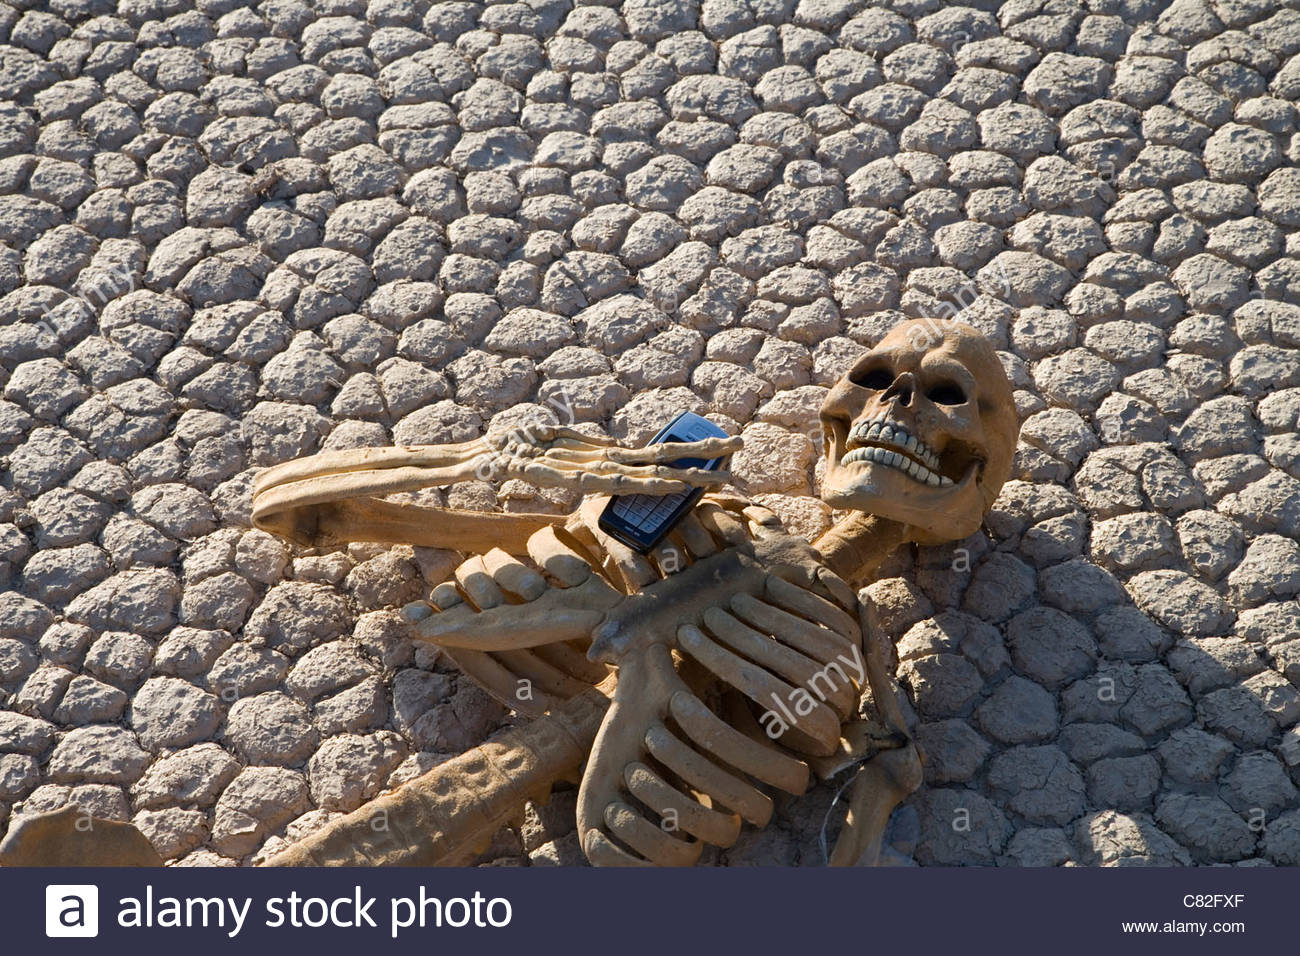 USA, California, Death Valley, skeleton and mobile on cracked earth - Stock Image